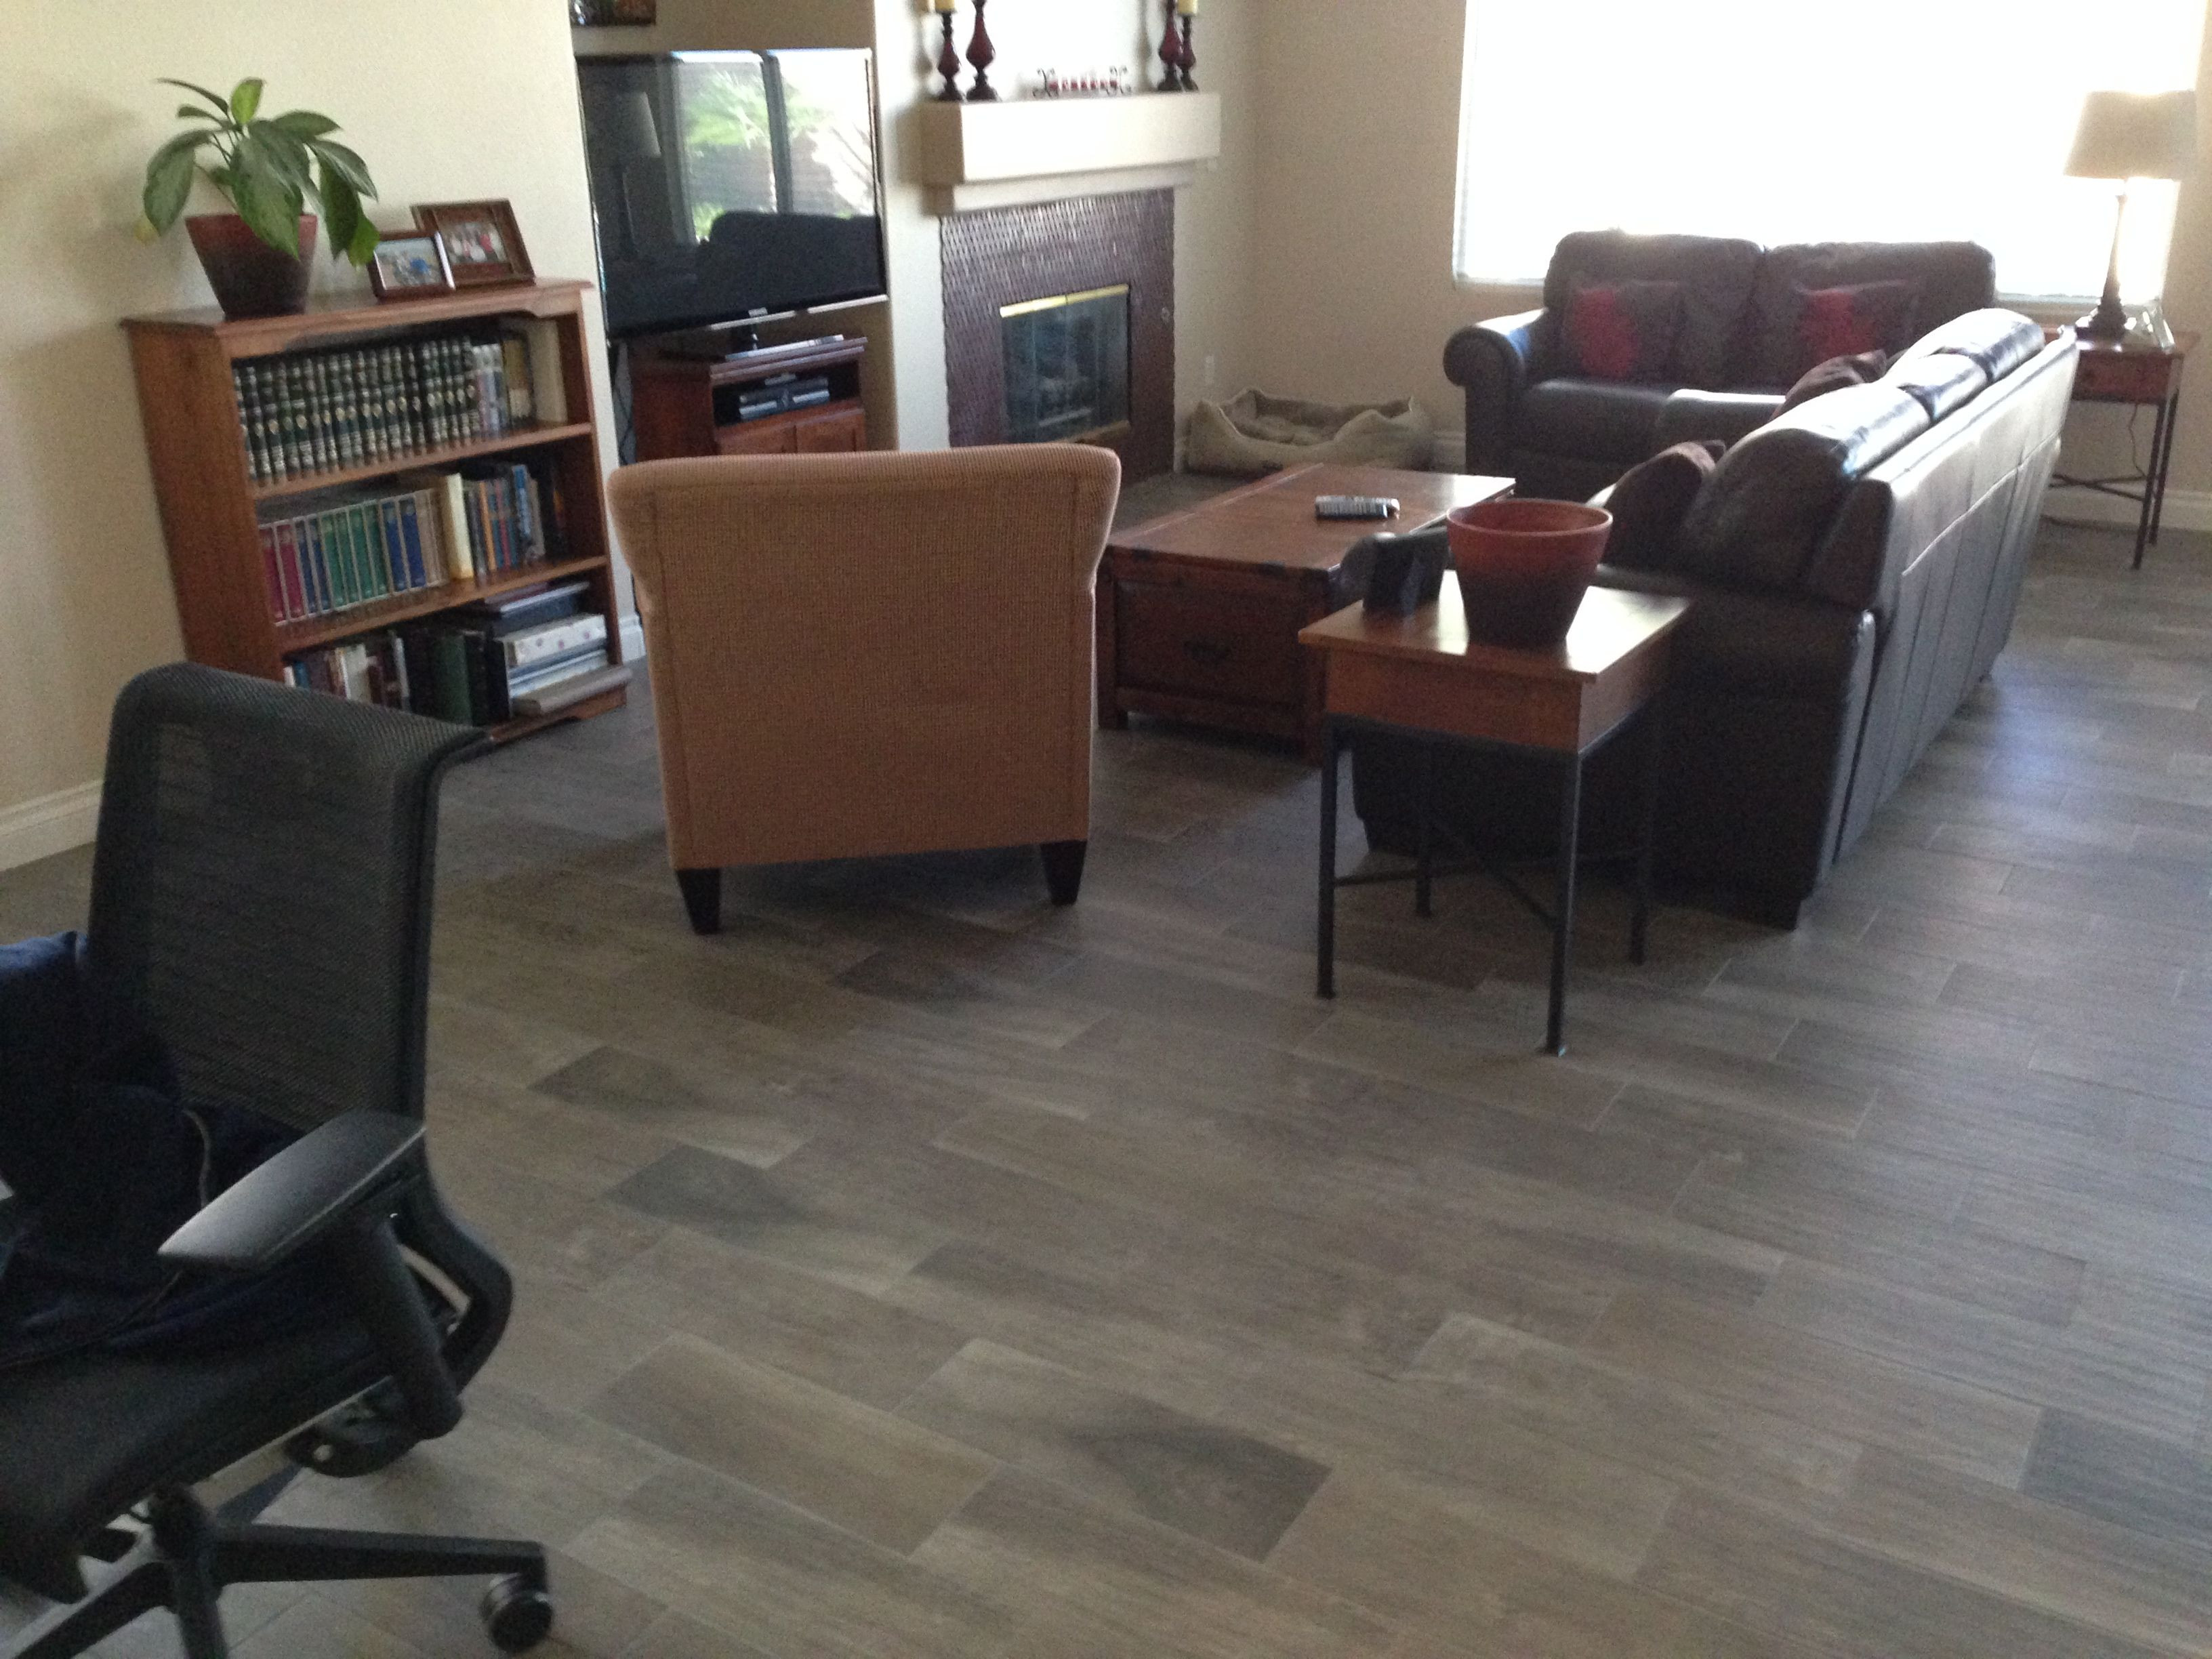 hardwood flooring distributors nj of flooring distributors the story of our herringbone flooring pertaining to flooring distributors we removed the old outdated carpeting and installed custom living flooring distributors 50 elegant hardwood